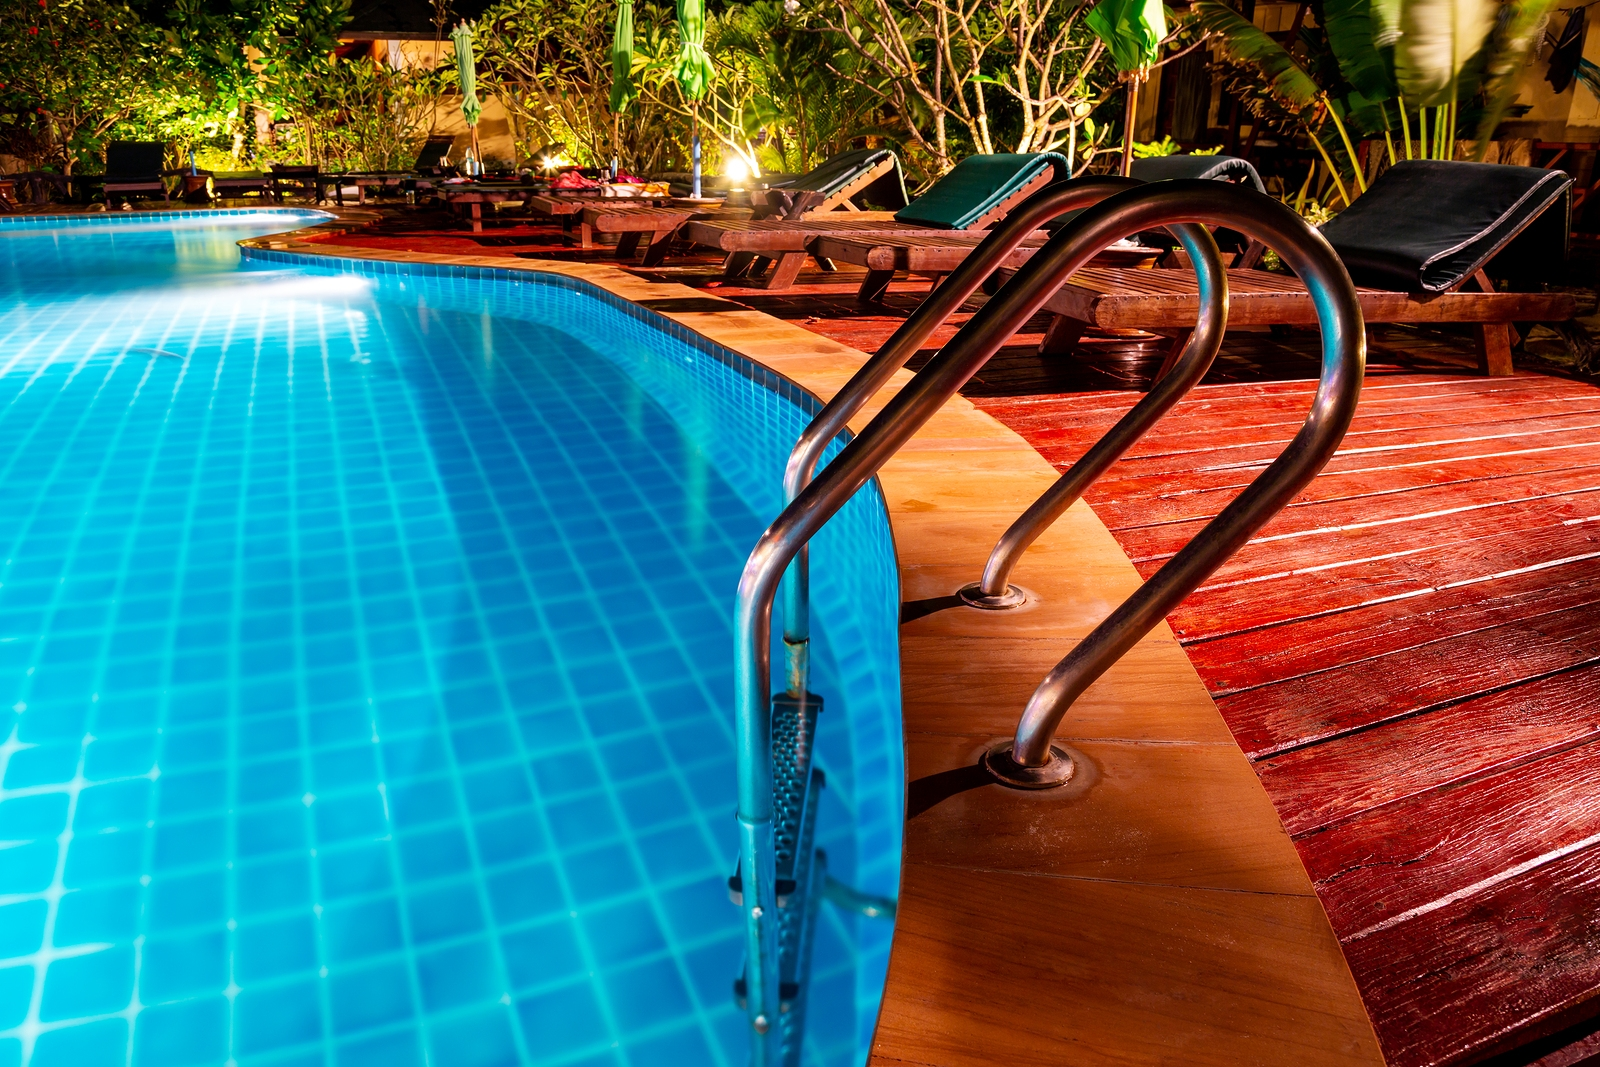 Pool Renovation Ideas And Upgrades For The New Year